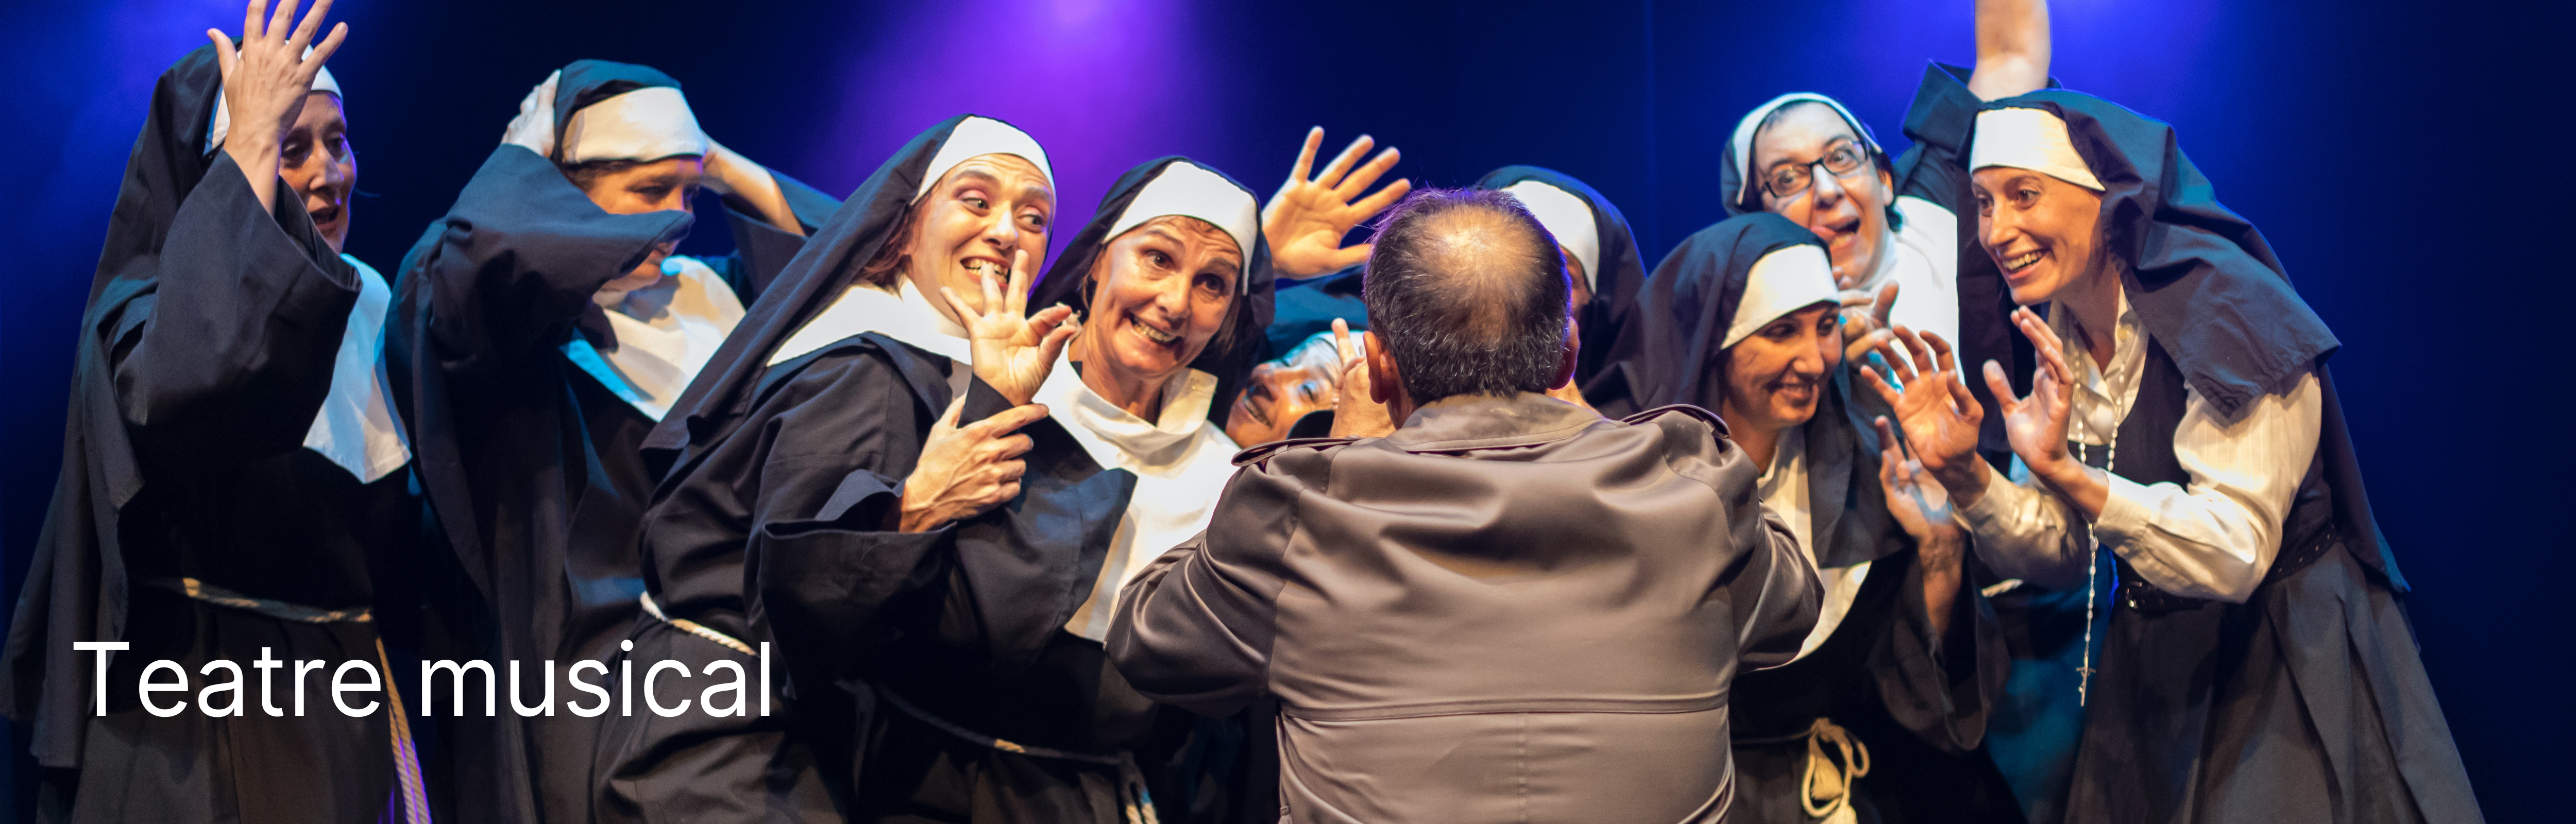 Teatre musical Sister Act